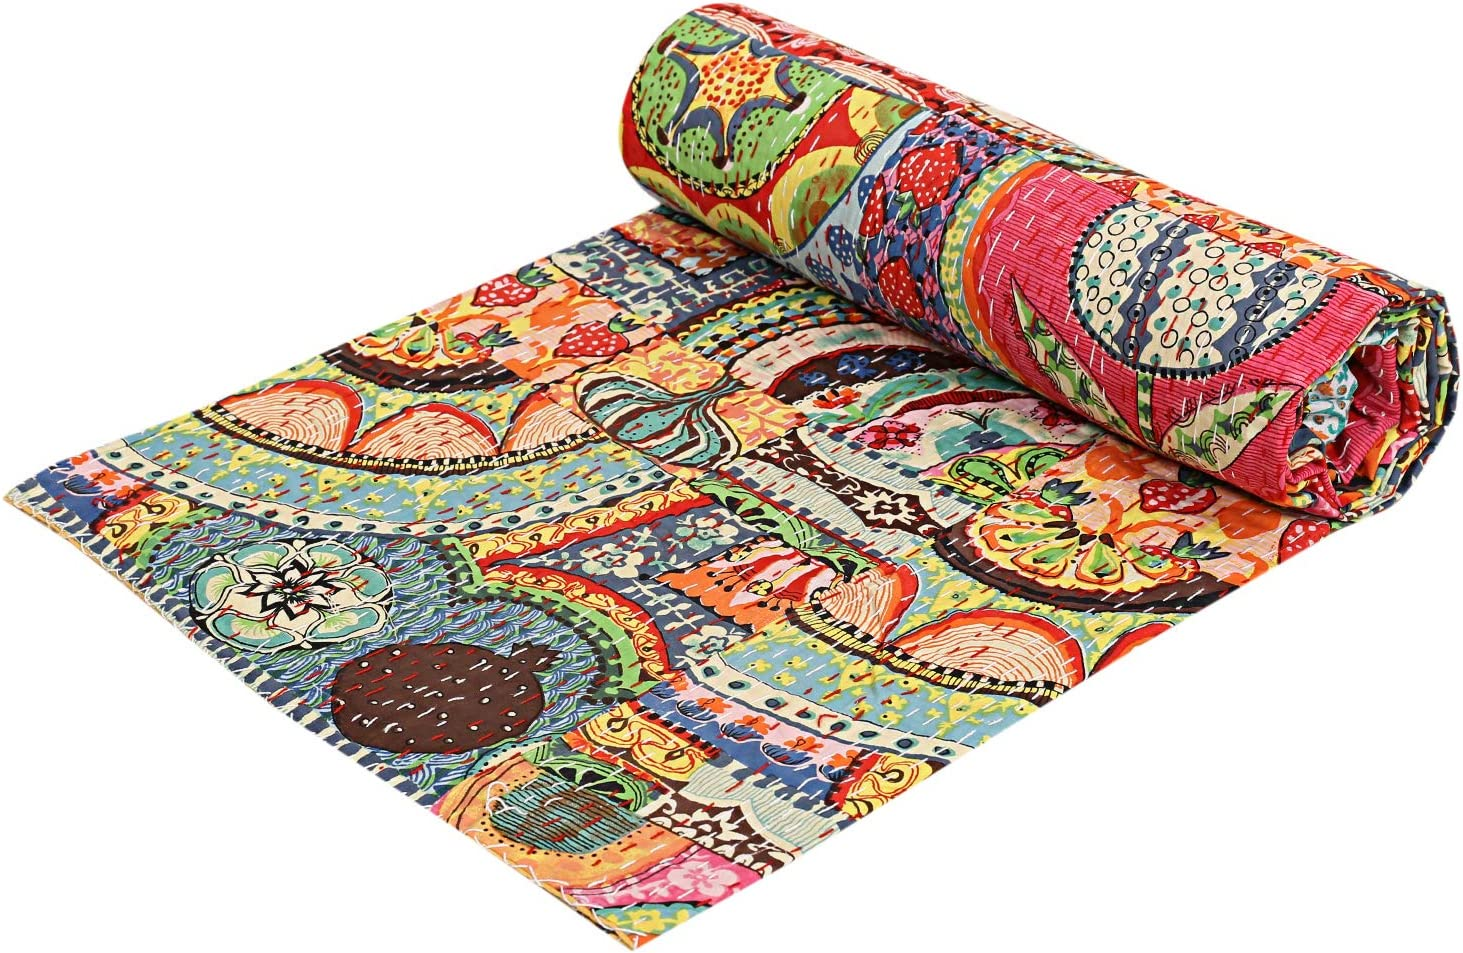 Indian Cotton Kantha Quilt qeen Bedspreads Throw Blanket  Bohemian Bedspread Bohemian Bedding Handmade Kantha Quilt Bed Cover